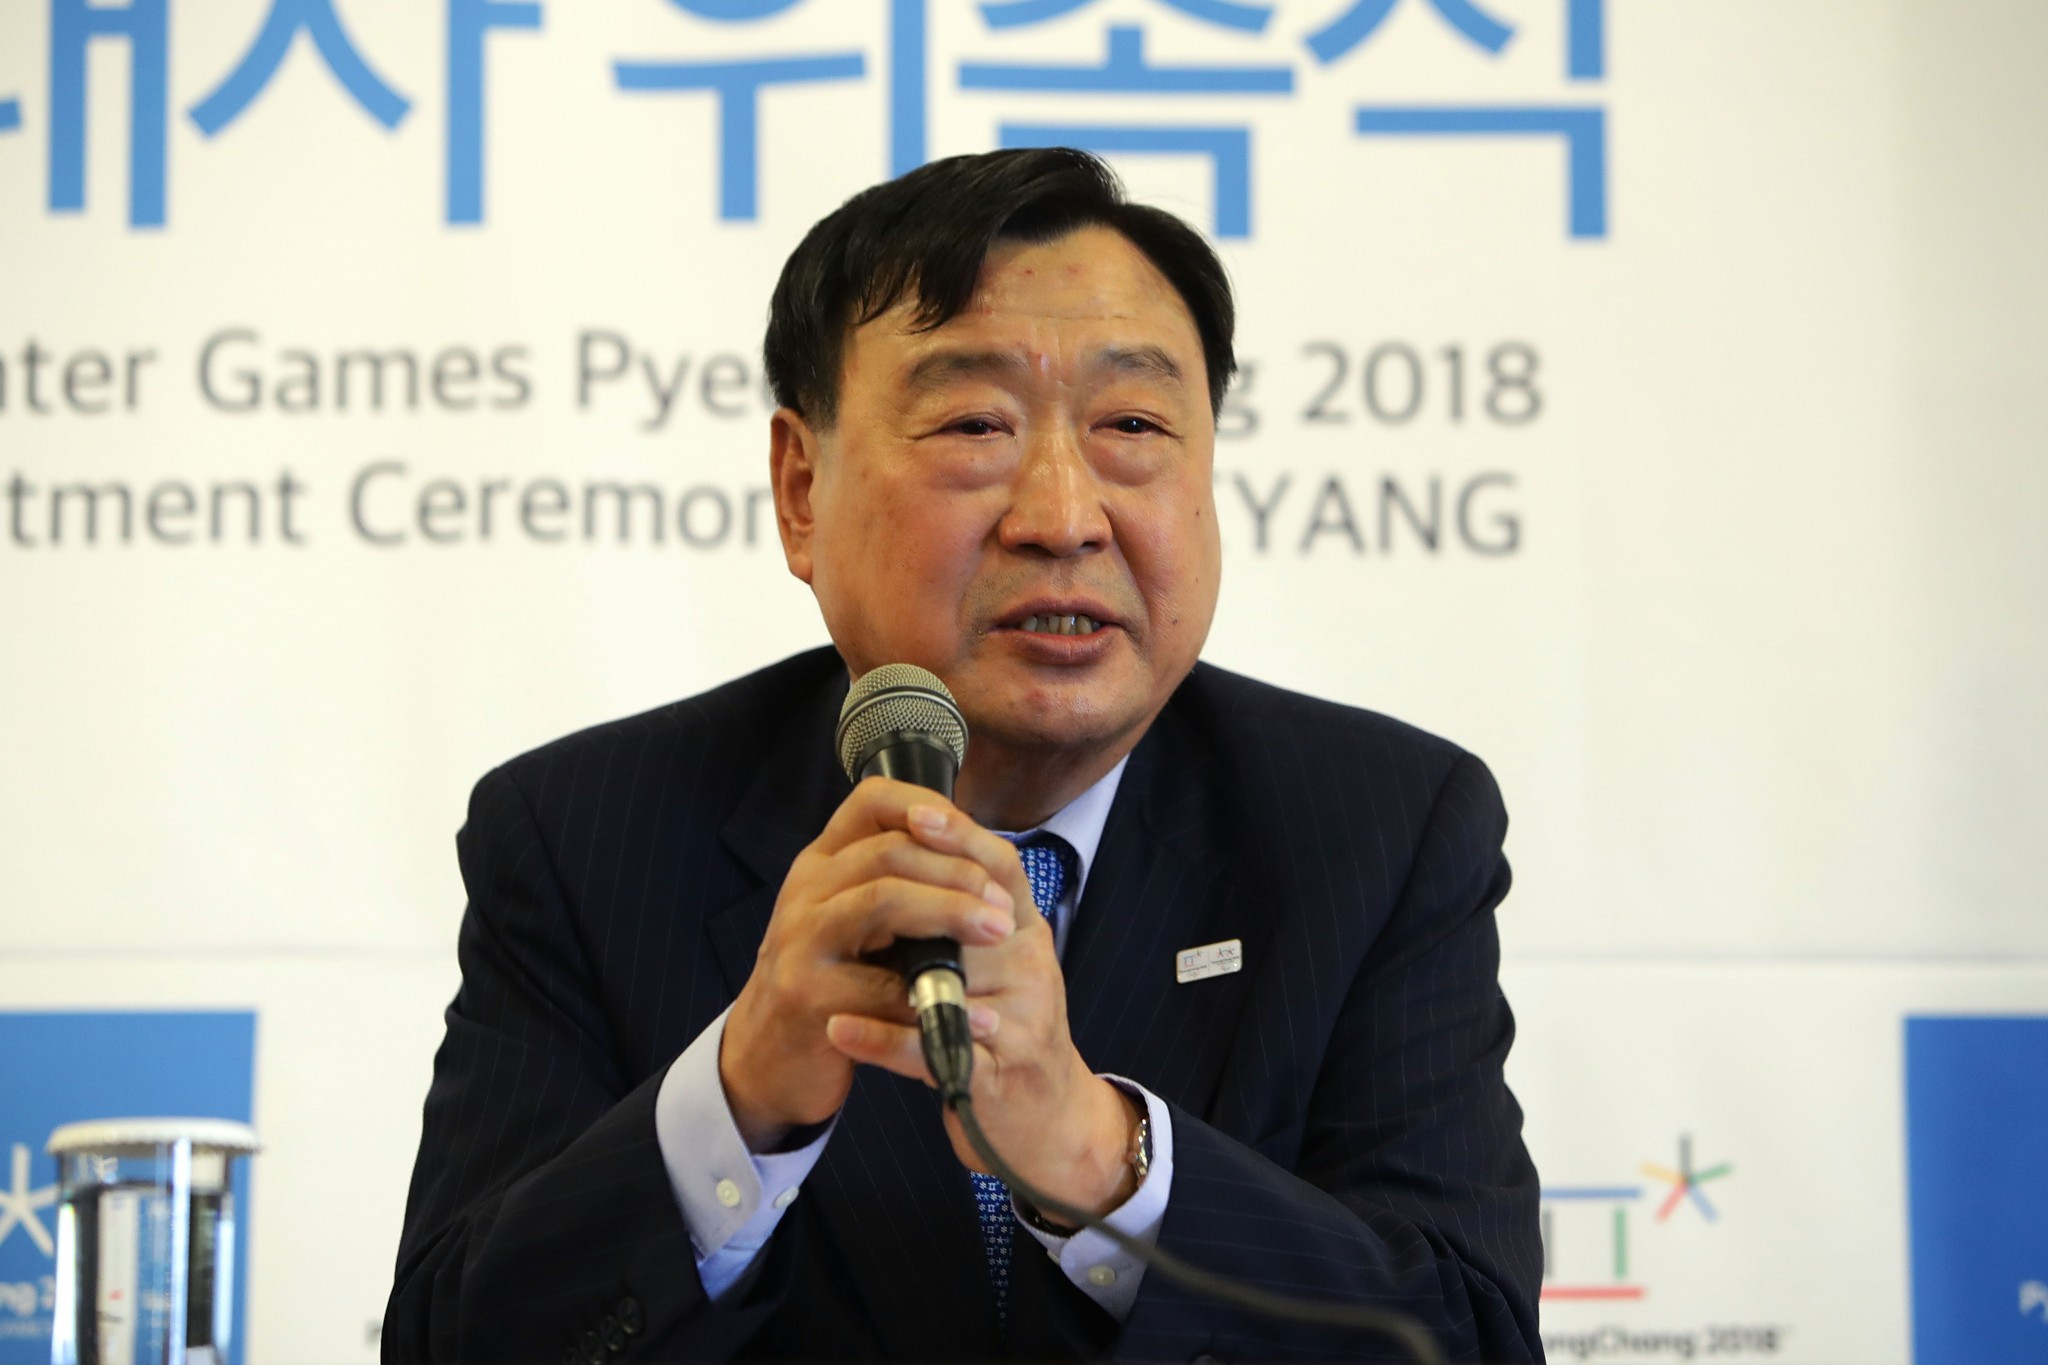 Pyeongchang 2018 President Lee Hee-beom has attempted to minimise the impact that the current threat posed by North Korea could have on the Winter Olympic and Paralympic Games ©Getty Images